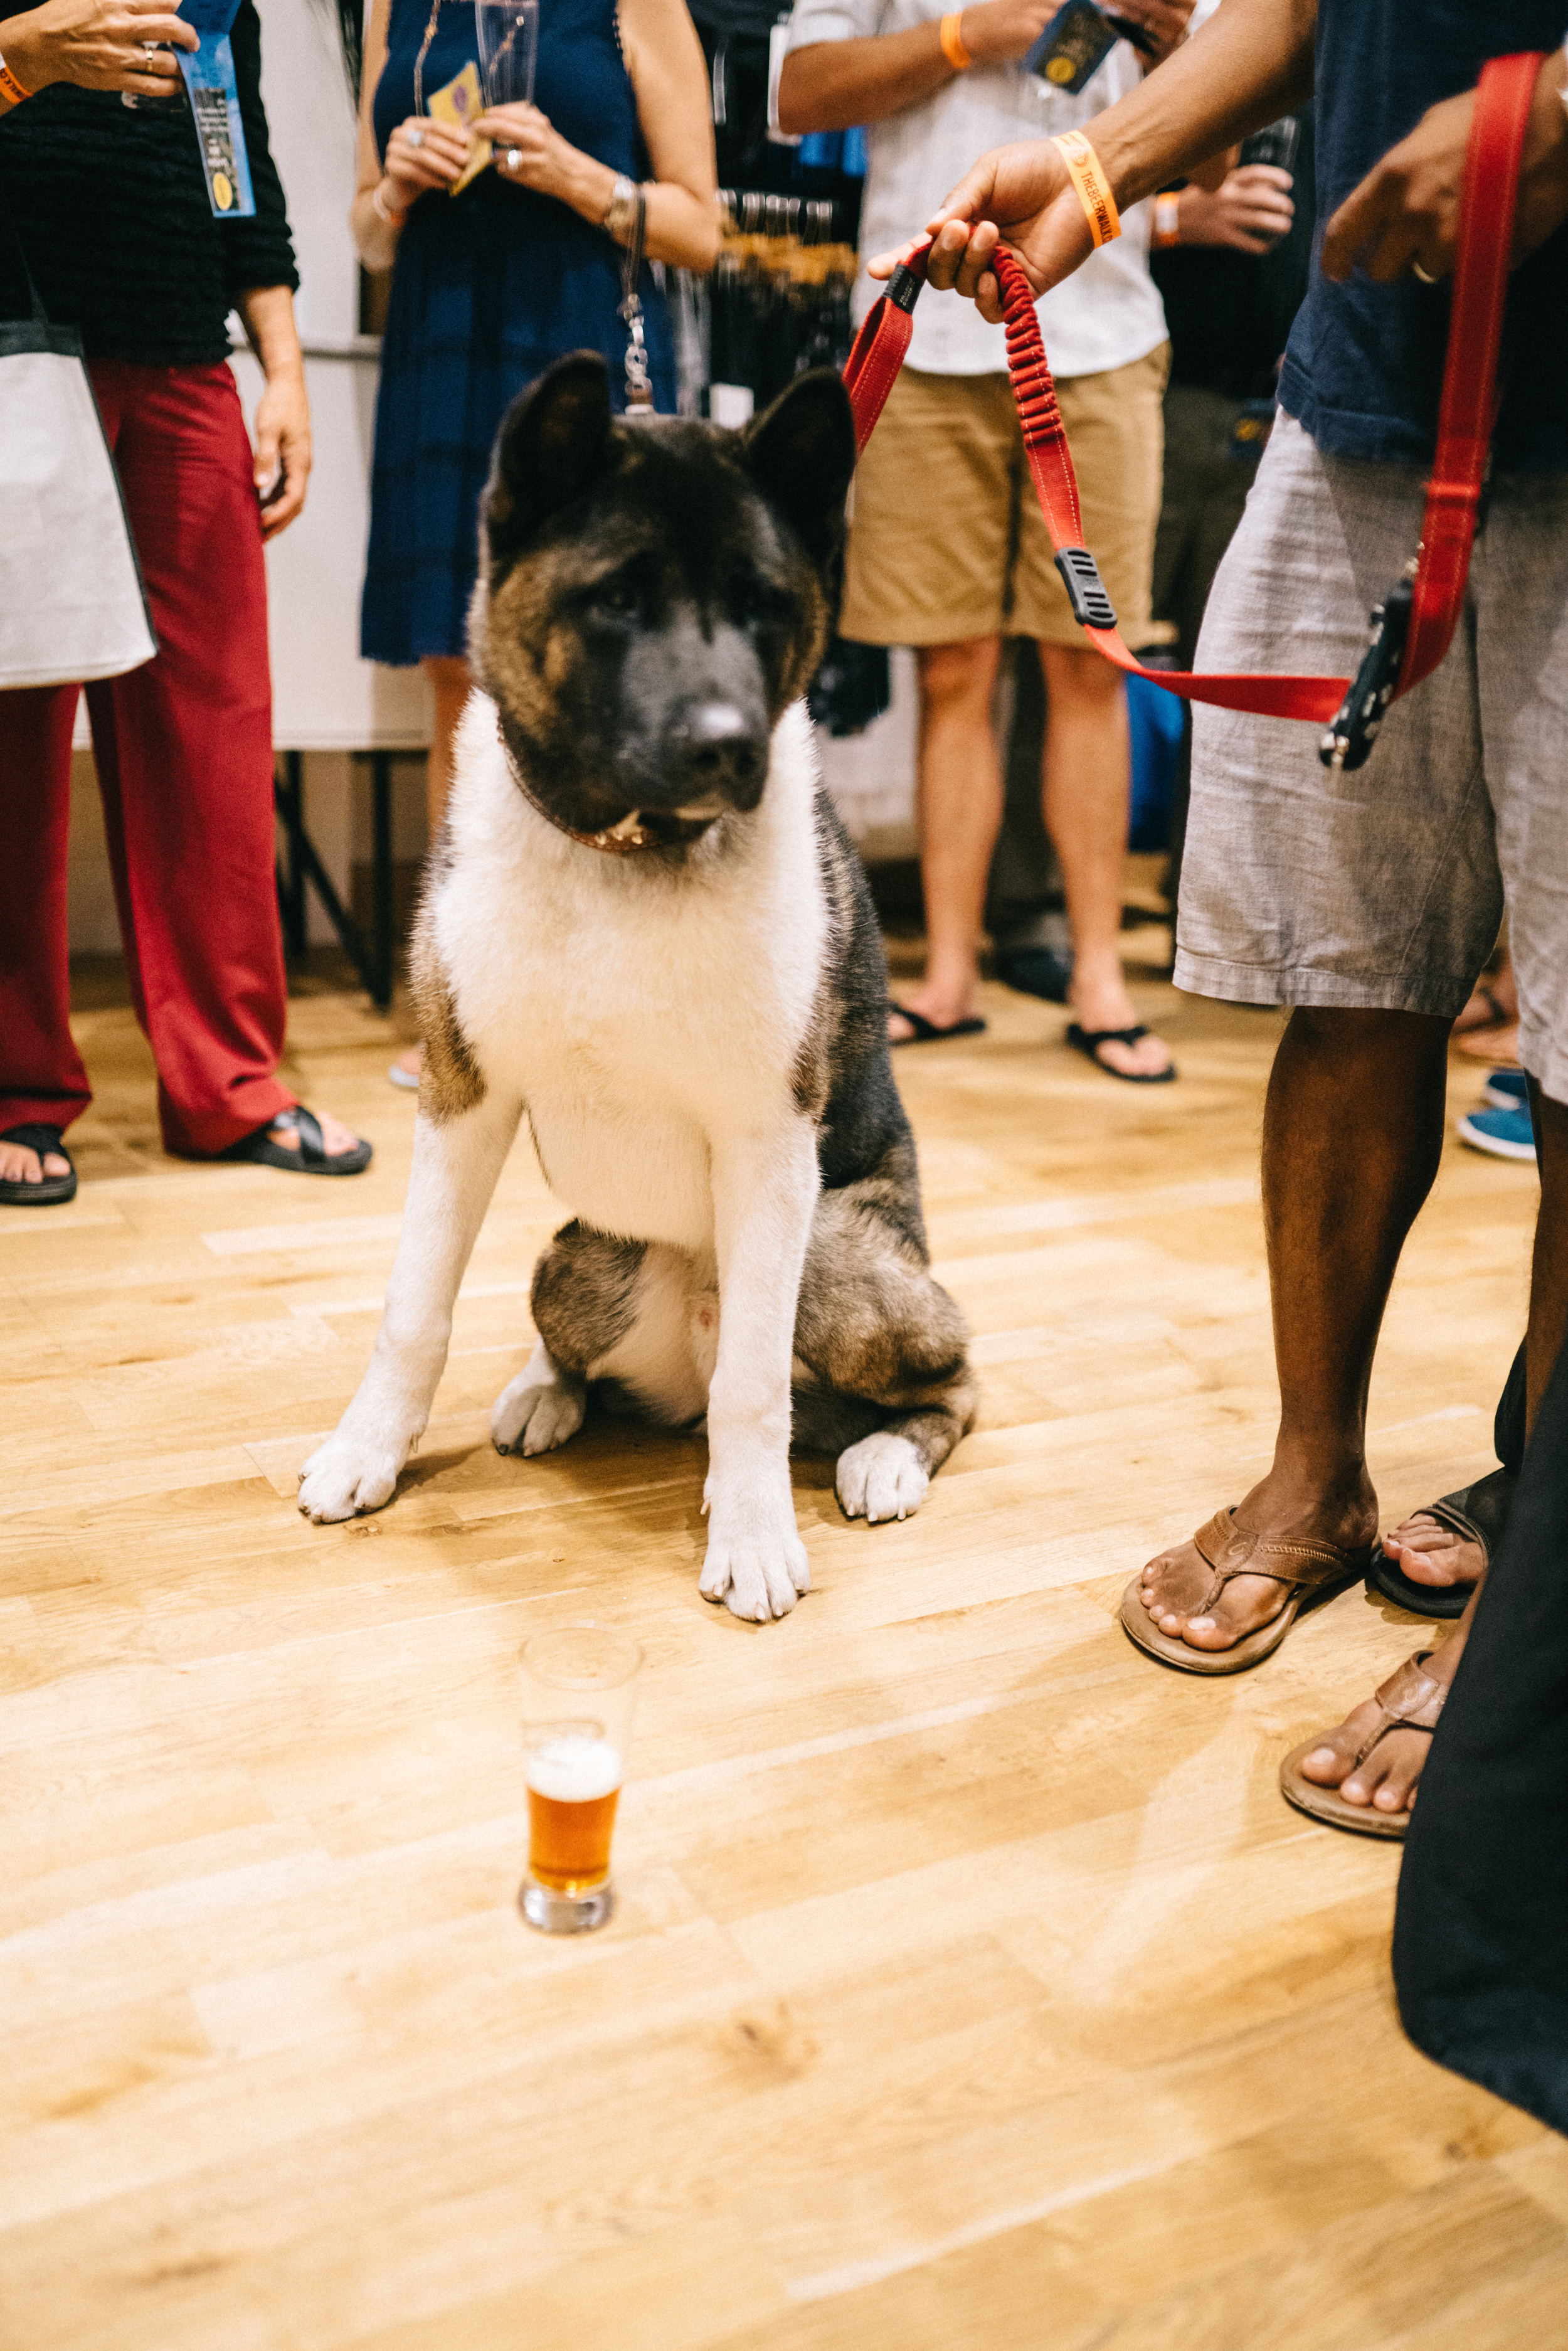 At one point, we were walking with backup (like the movie, The Hangover), Hercules, the Akita. FYI: He didn't drink it.